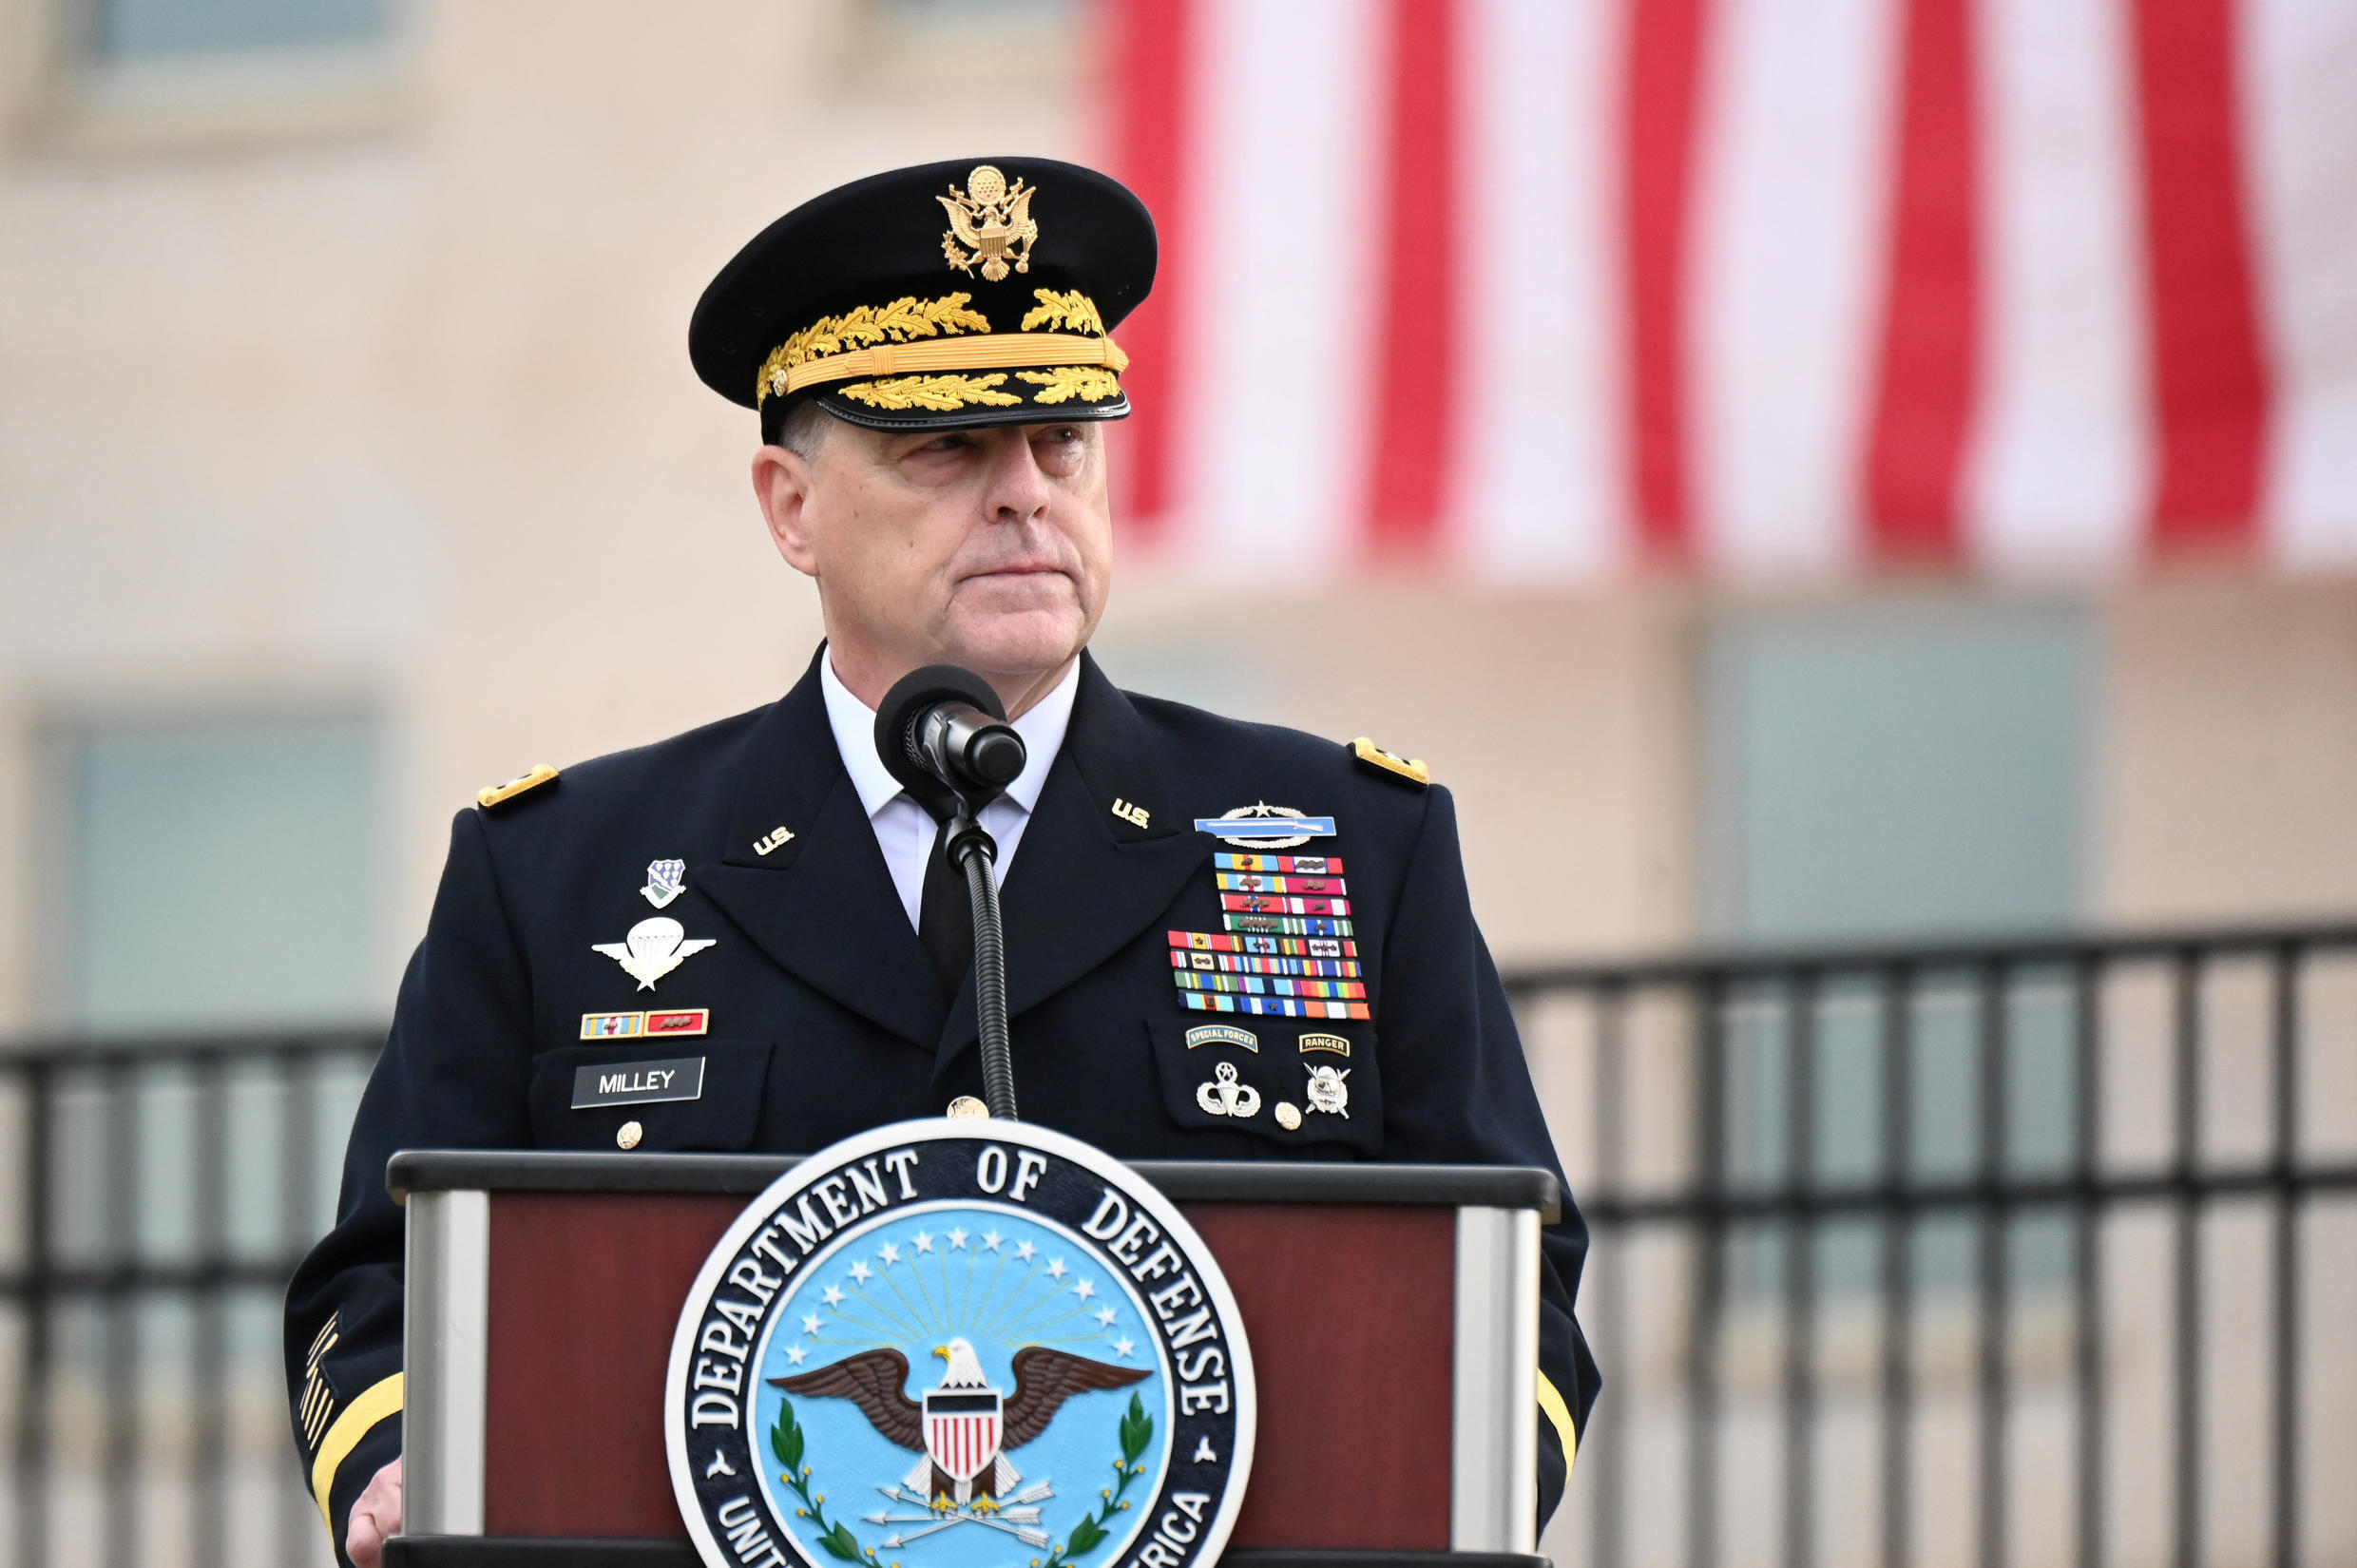 General Mark Milley gives remarks during the 19th annual September 11 observance ceremony